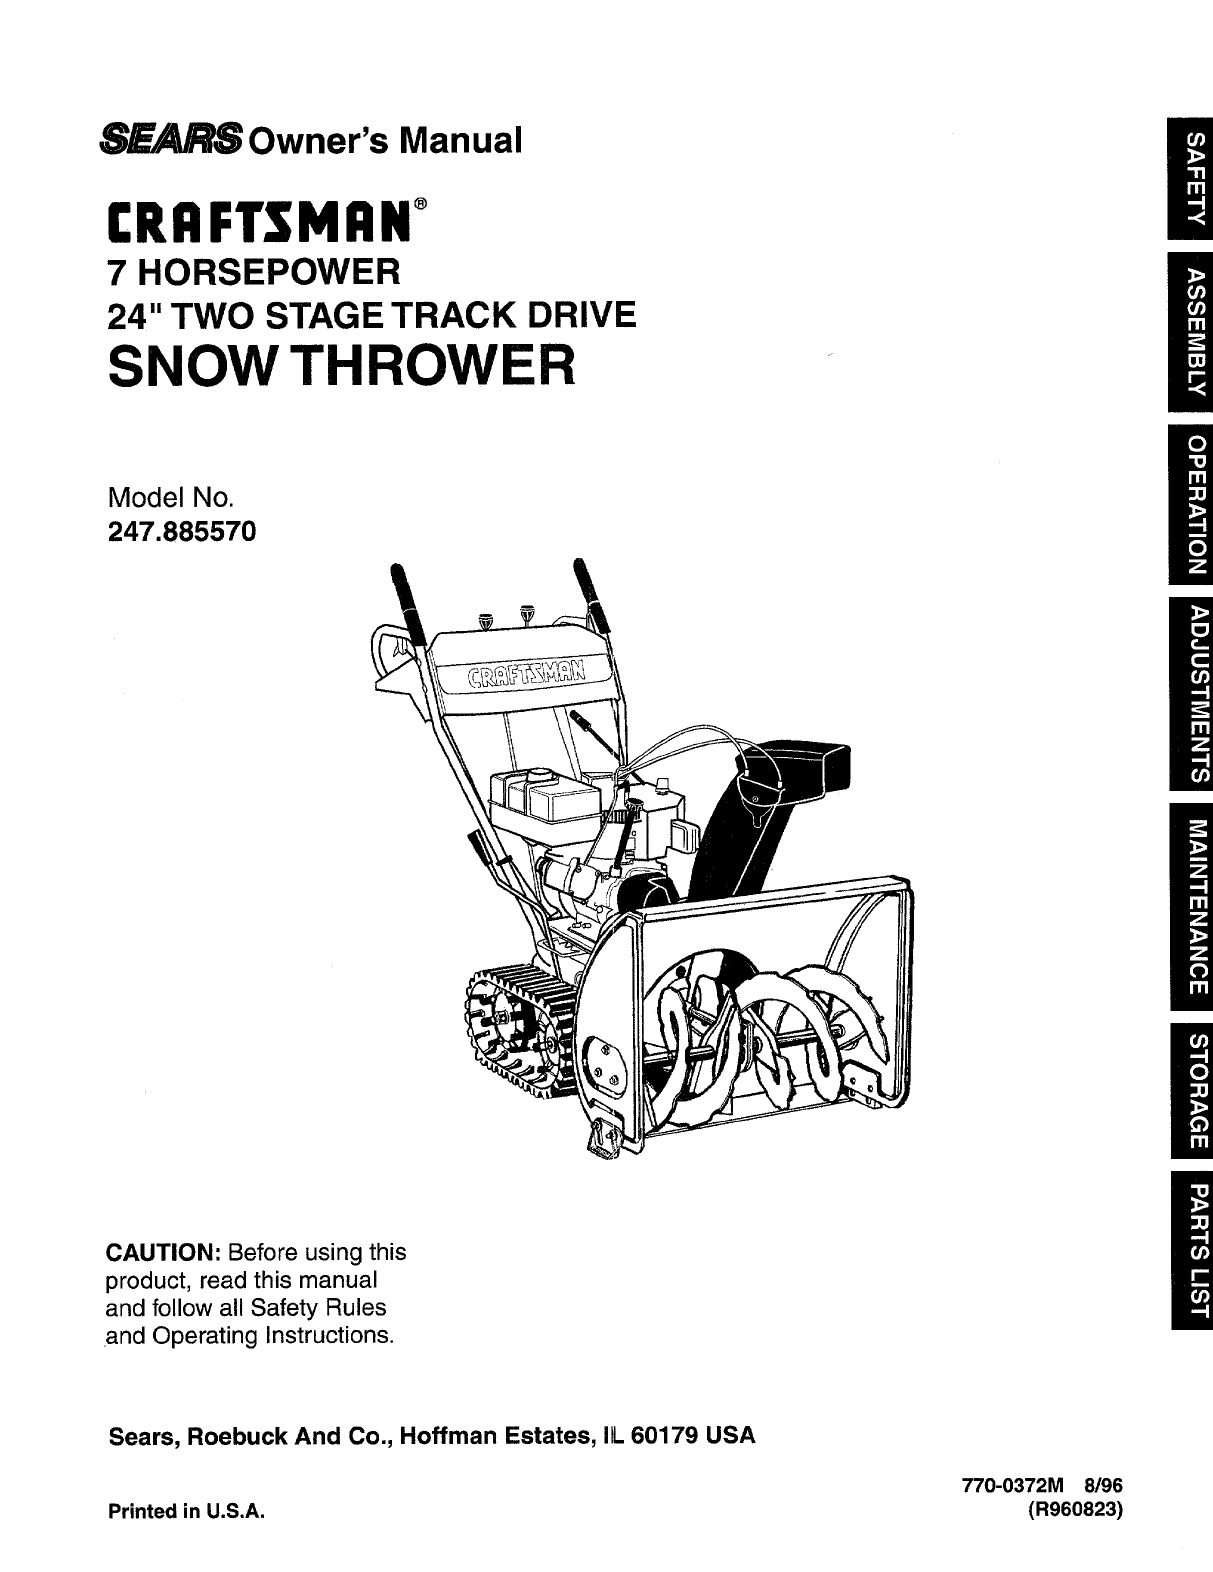 Craftsman Snowblower Diagram likewise Snowblower Murray Chute additionally Snowblower Murray Chute additionally L9910191 also Mtd Snowblower Parts Diagram. on sears craftsman 28 snow blower parts